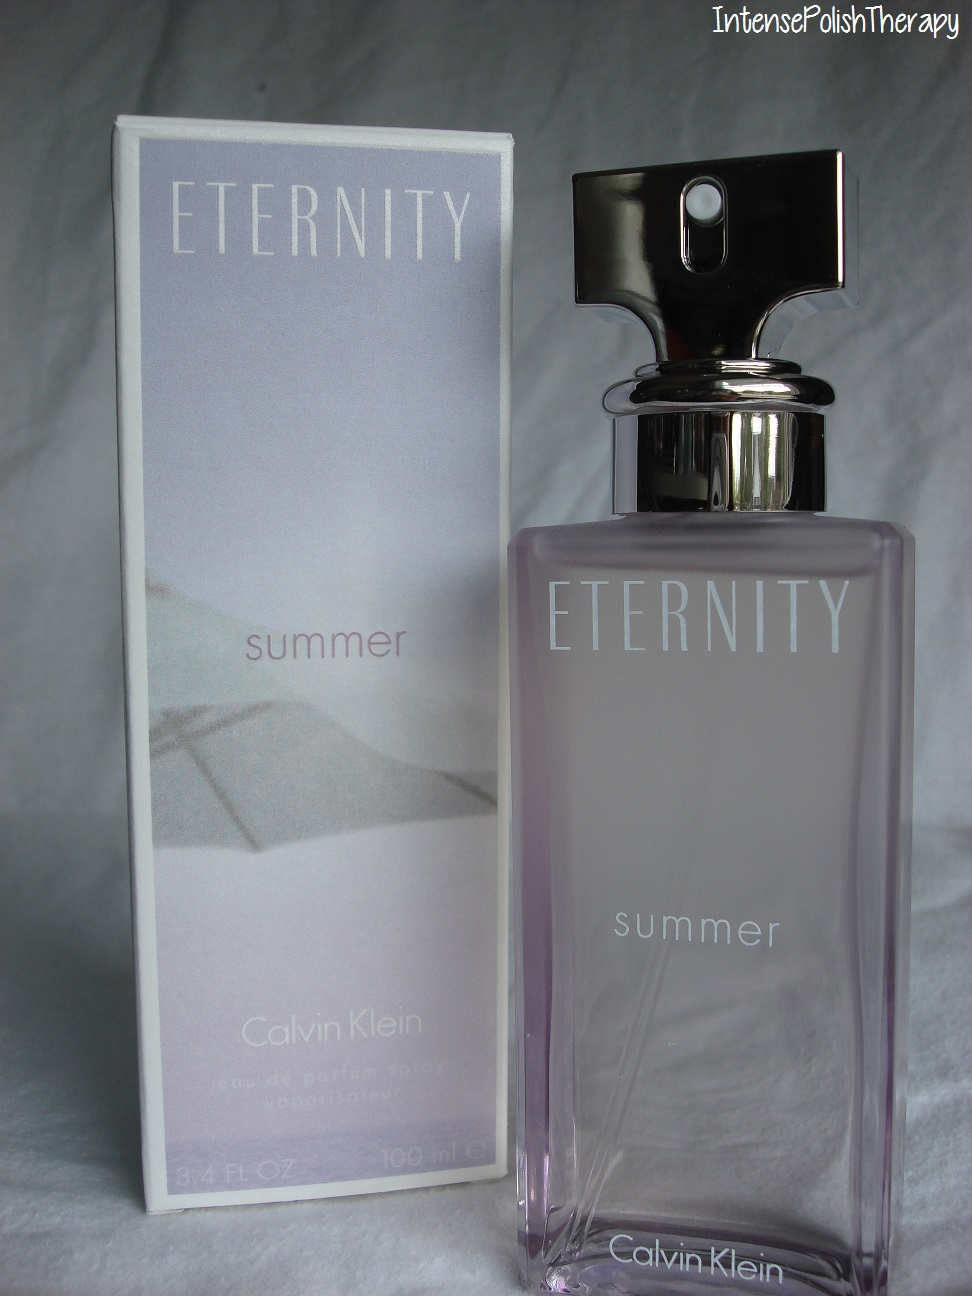 Calvin Klein - Eternity Summer for her